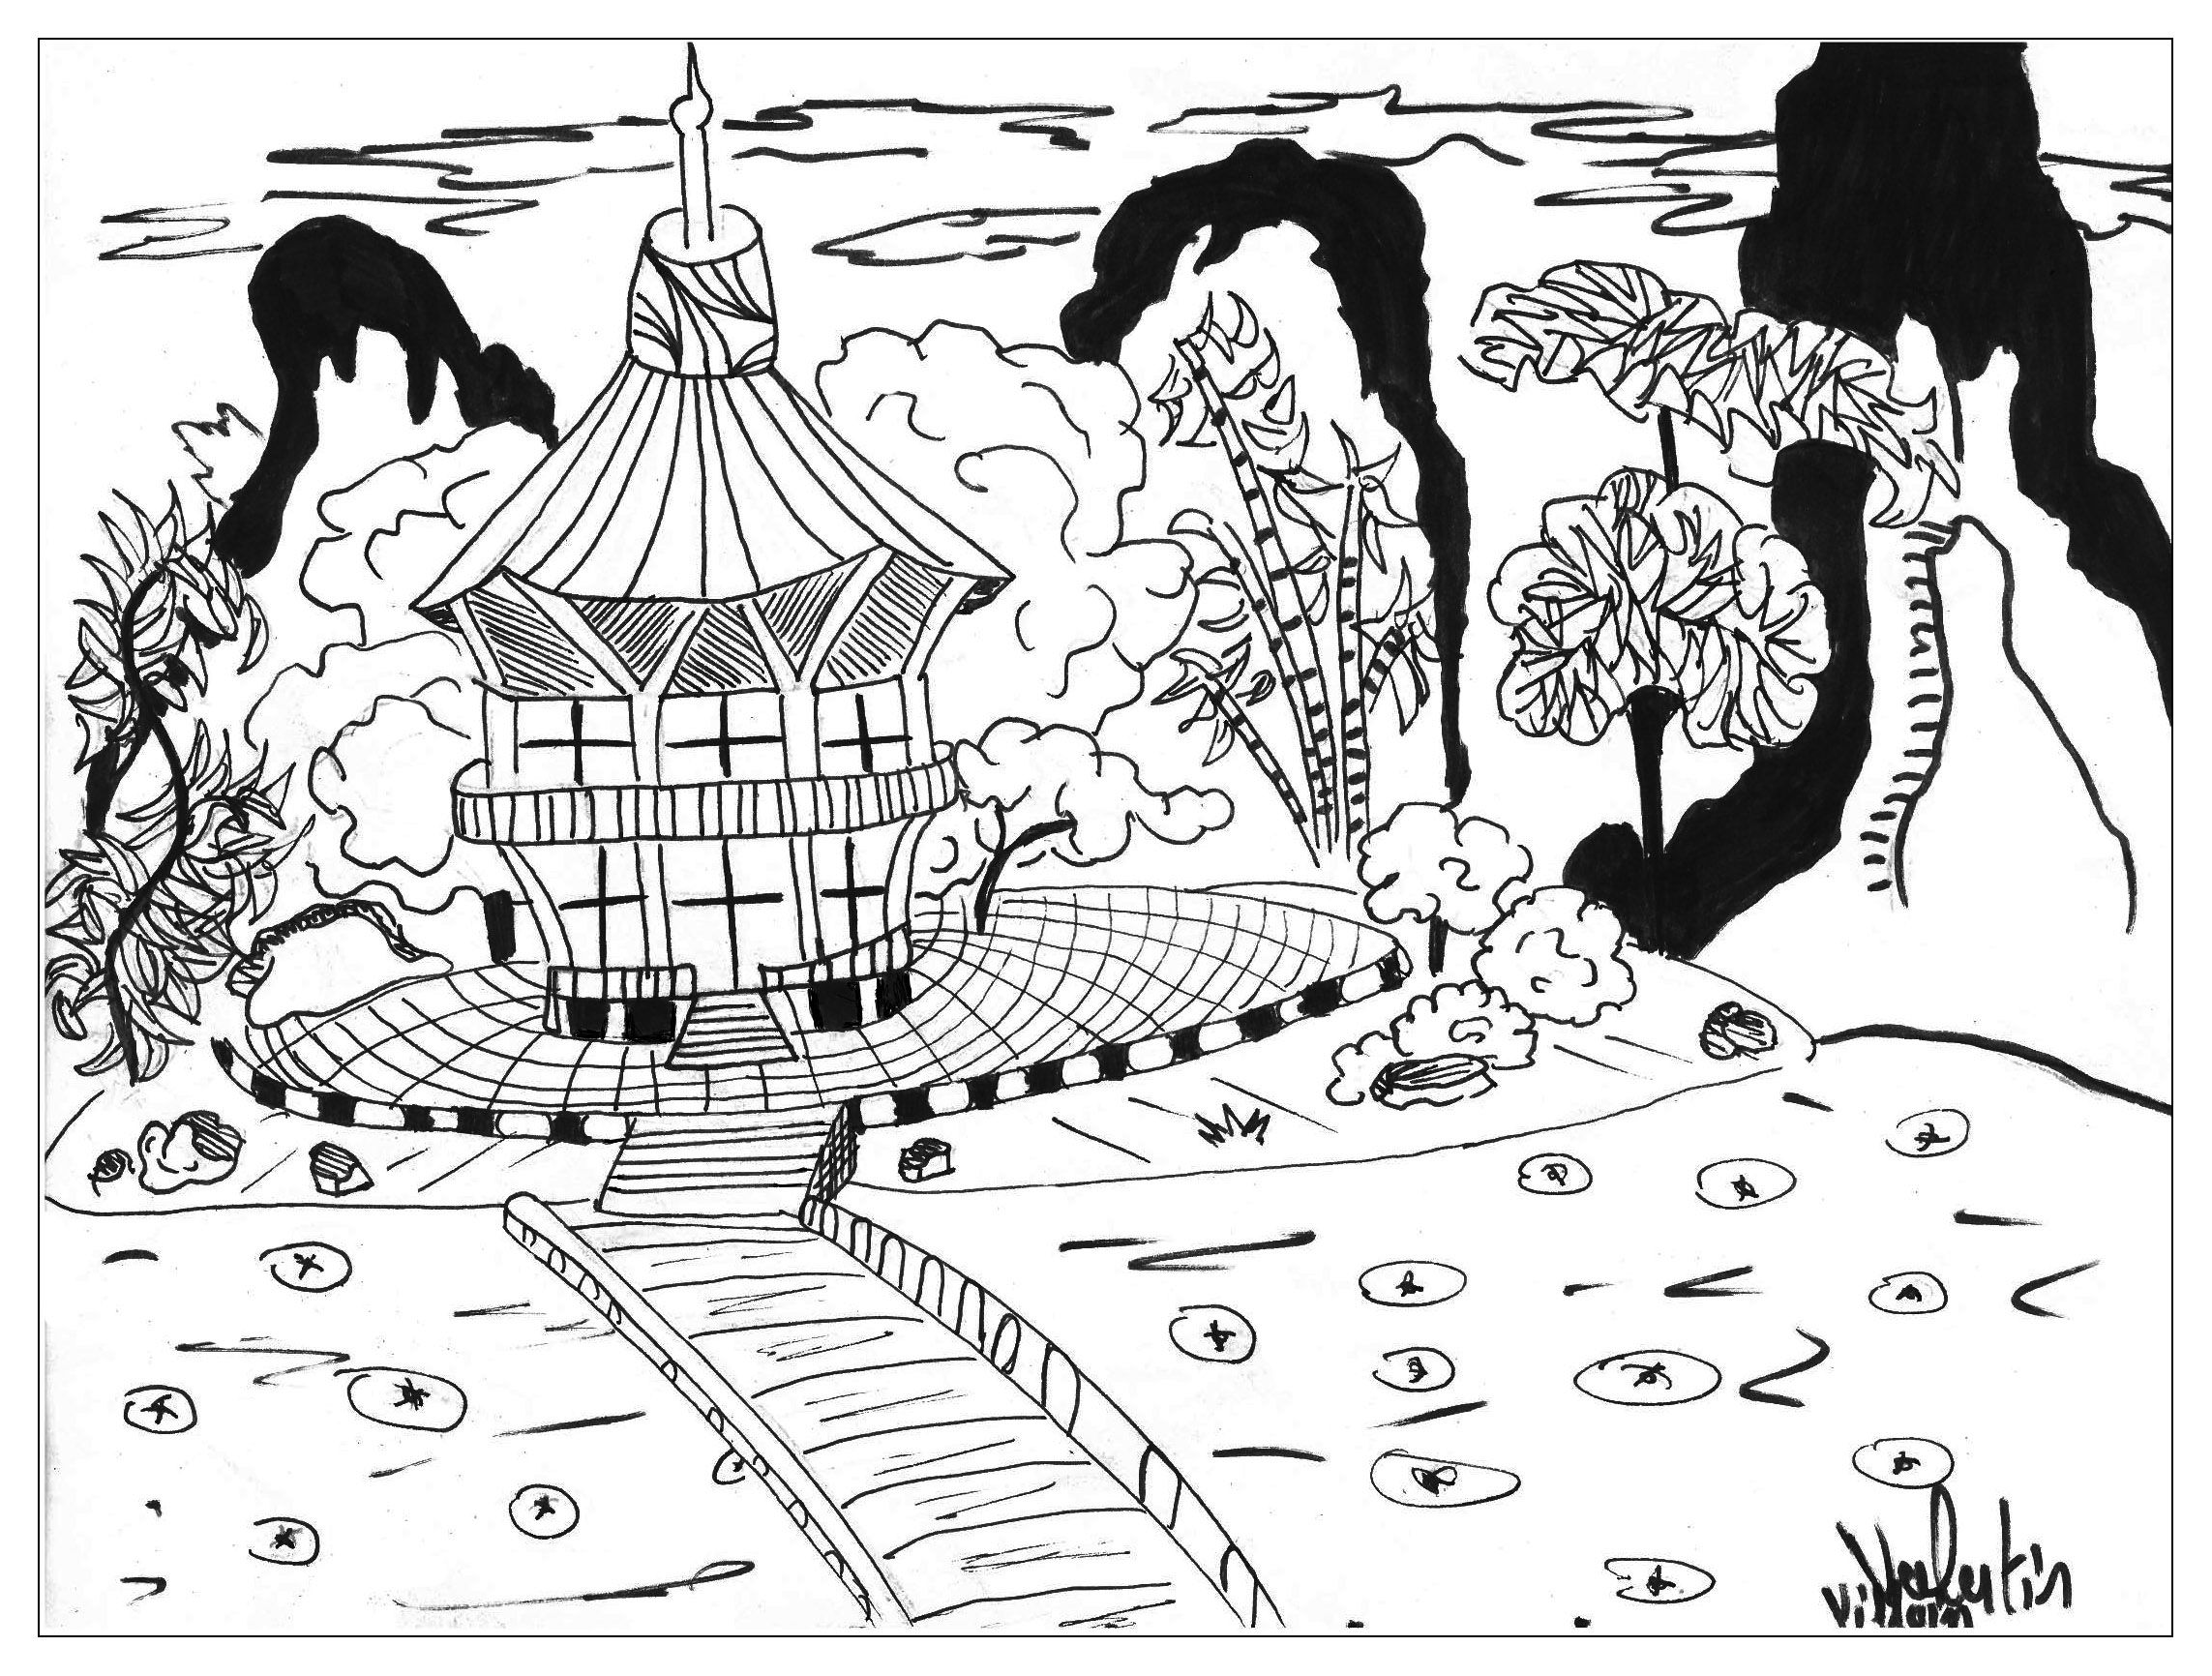 Free coloring pages for jack and the beanstalk - Japan Coloring Pages For Adults Coloring Page Adults Japon Valentin